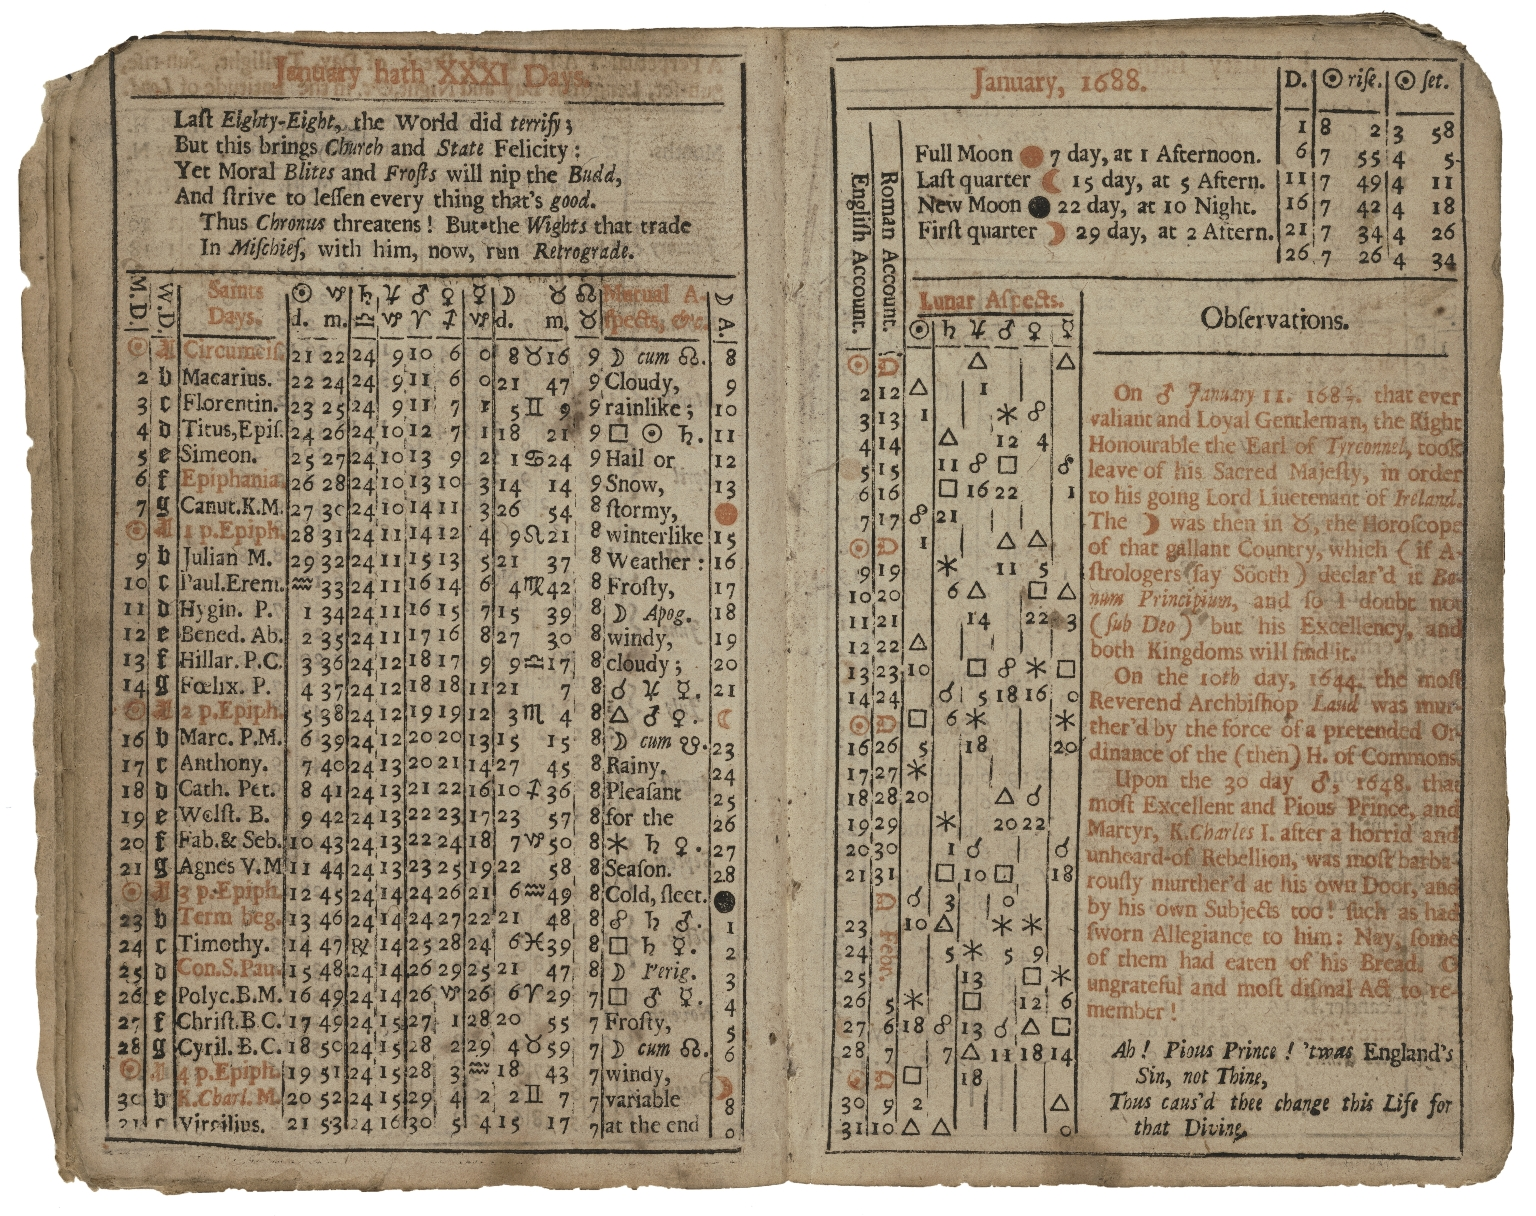 Ephemeris: or, A diary astronomical, astrological, meteorological, for the year of our Lord, 1688. It being the bissextile, or leap-year. Containing I. A compleat ephemeris in both accounts. II. The several luminarian eclipses. III. The solar quarterly ingresses. IV. Some modest astrological pr�dictions. Cum multis aliis, &c. By Jonh [sic] Gadbury, student in physick and astrology. Cum privilegio & gratia Regi� Majestatis.